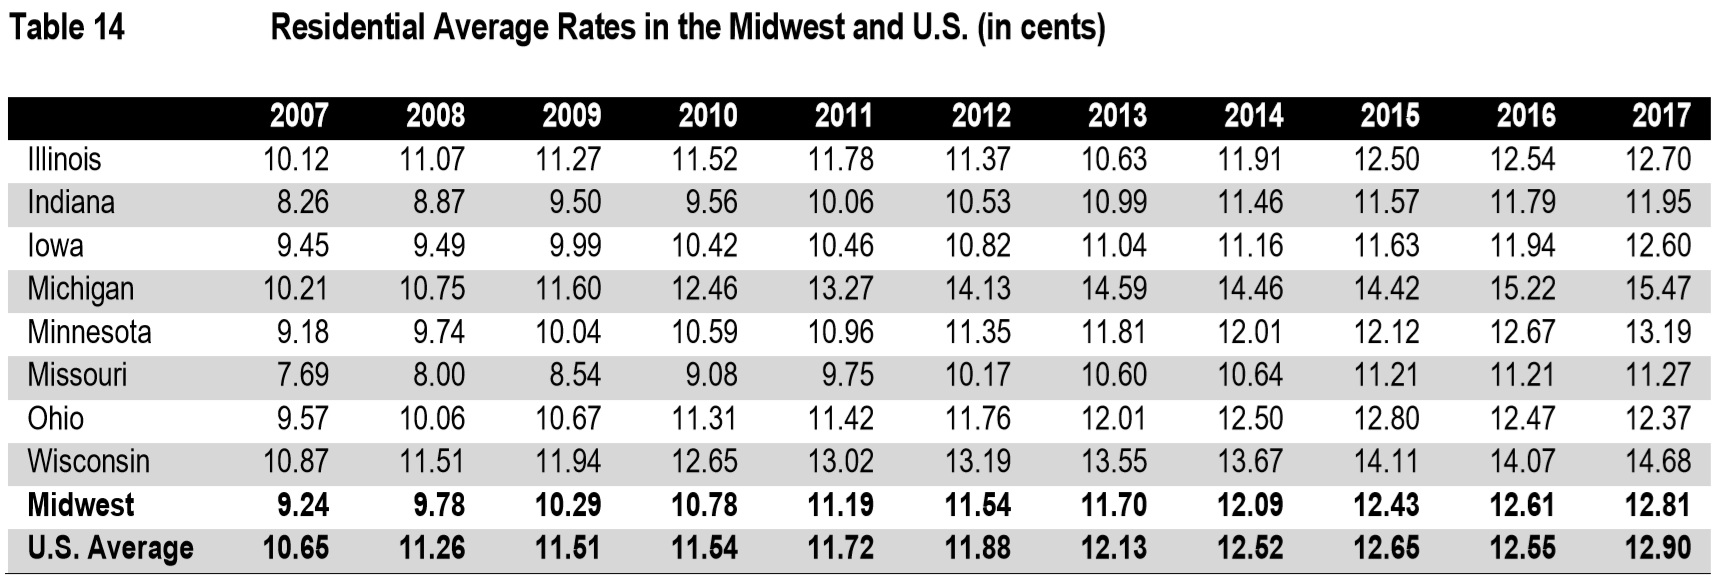 Us Rankings Prices In Wis Are Out Of Whack